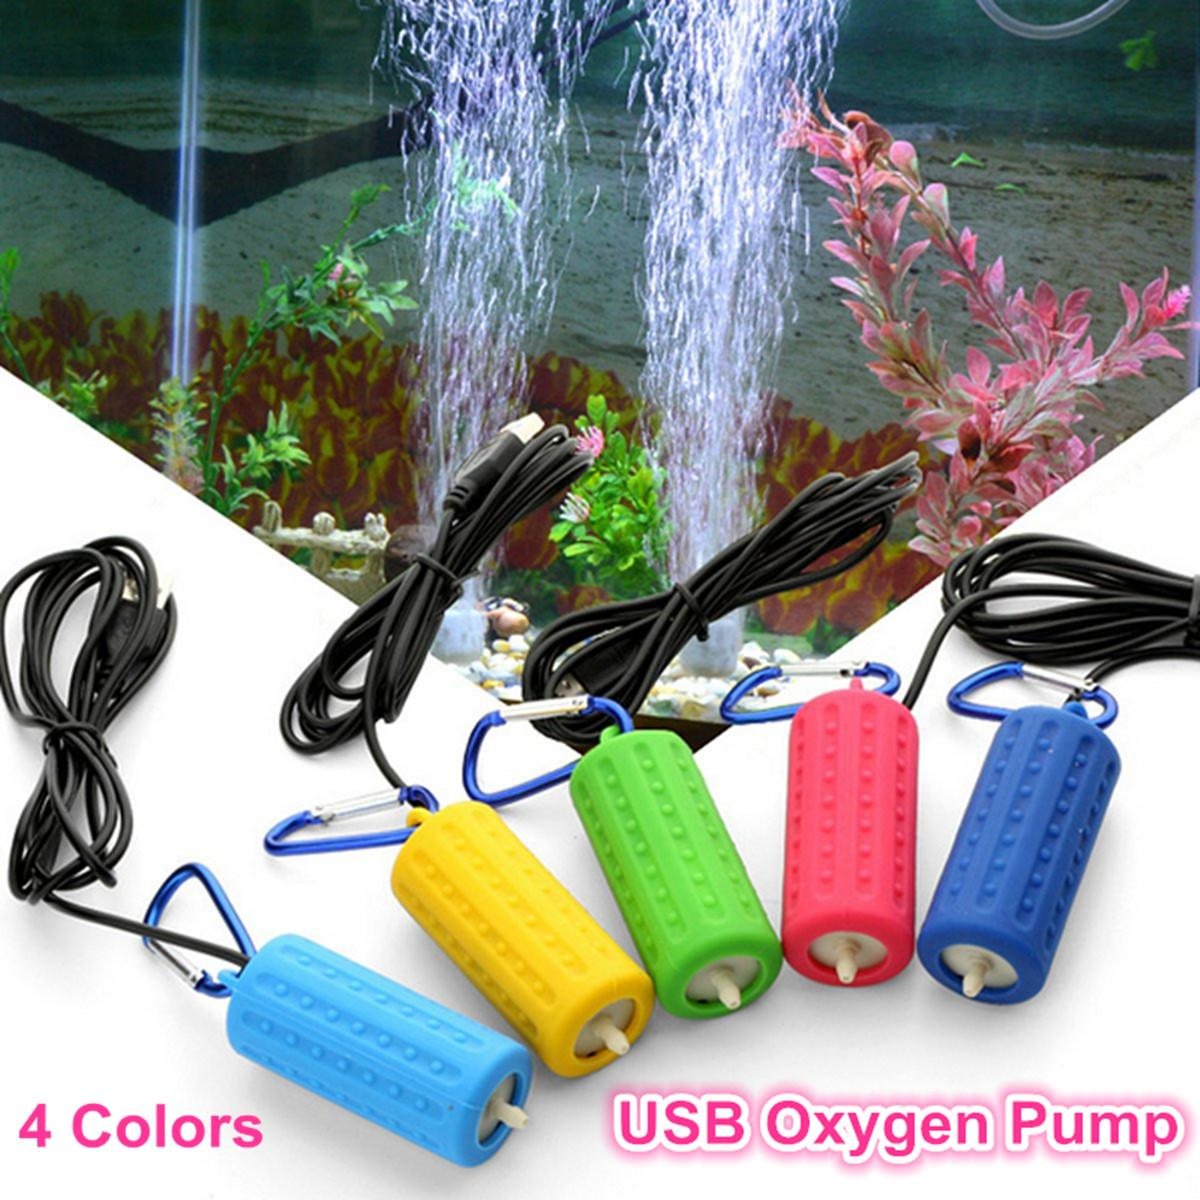 Aquarium Fish Tank Portable Mini USB Oxygen Air Pump Mute Energy Saving Supplies Aquatic Terrarium Fish Tank Accessories Tools